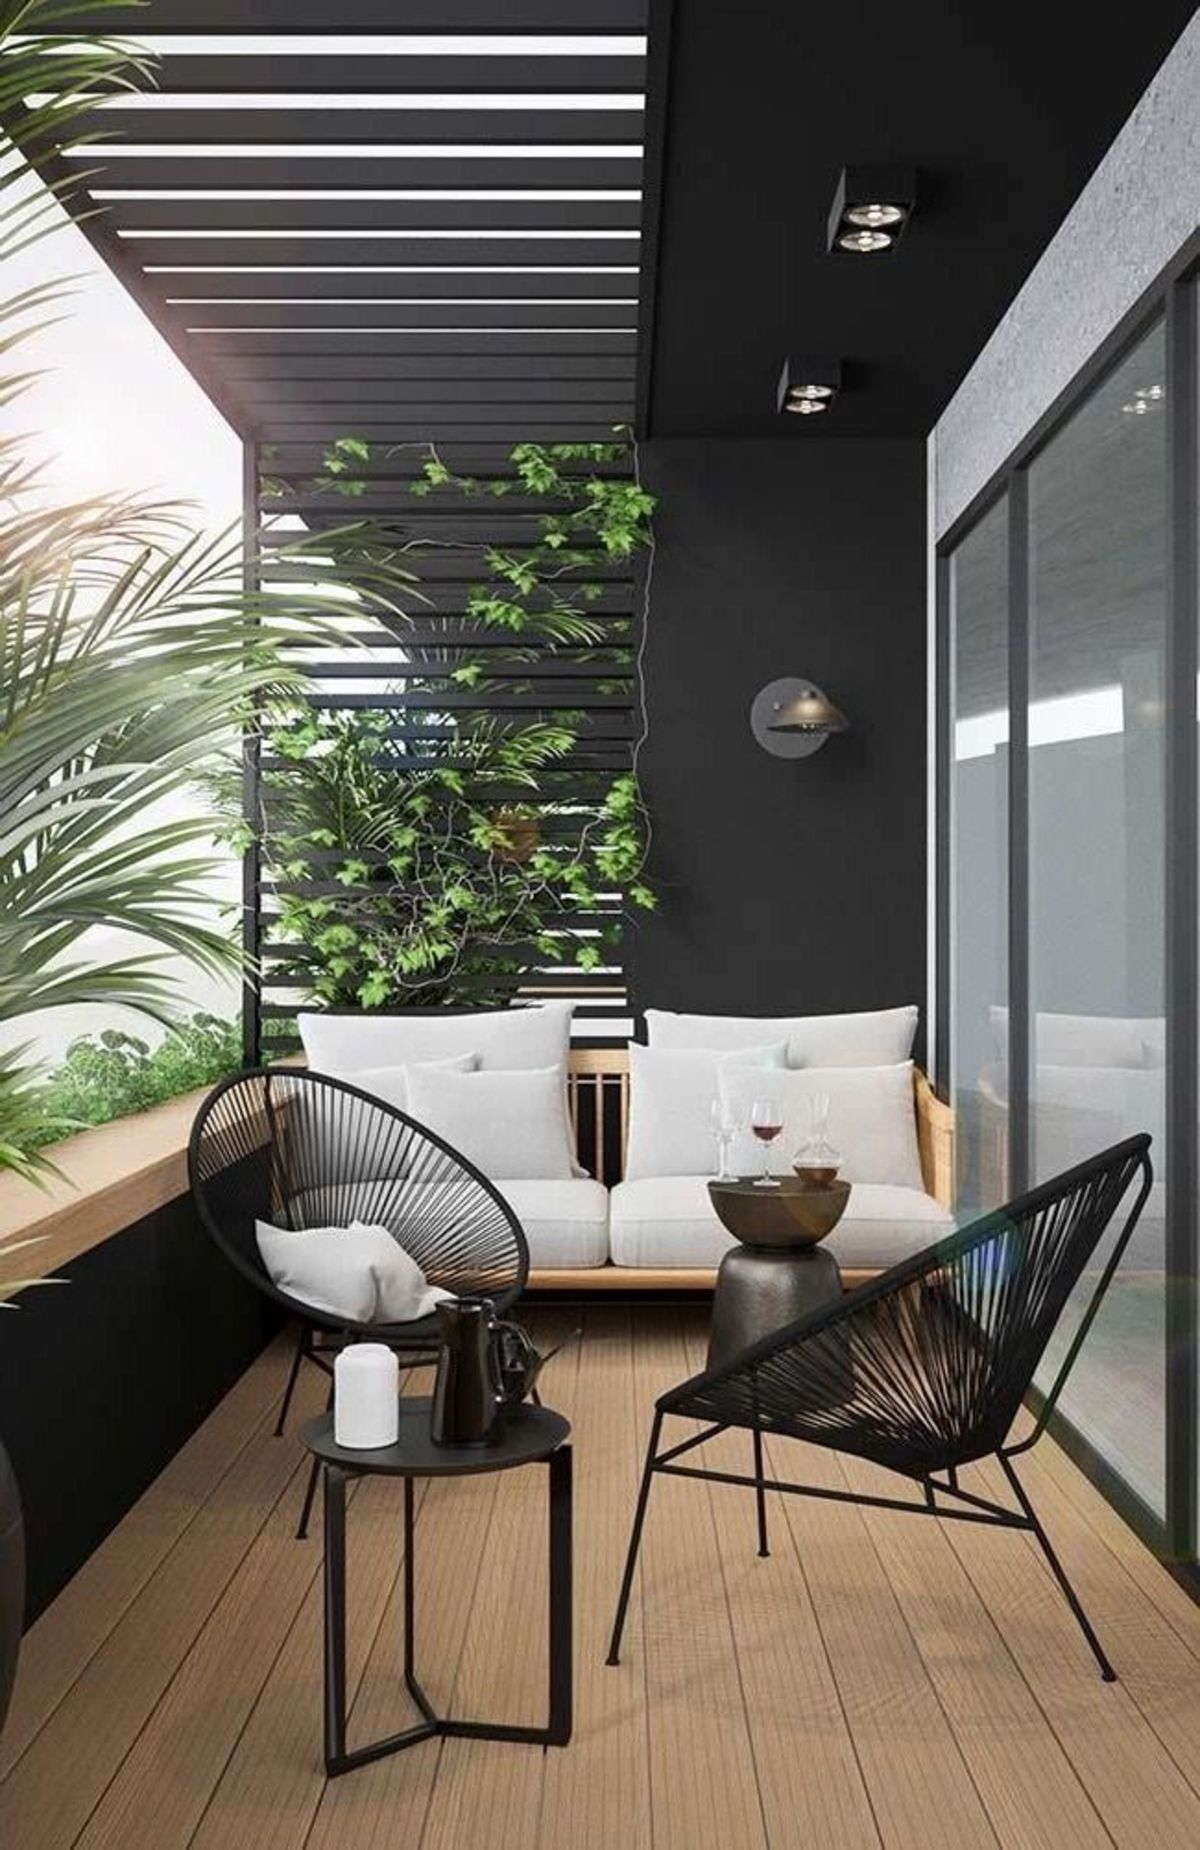 Outdoor Patio Ideas | Outdoor Decor | Super Chic Balcony Ideas | Outdoor Space Inspiration | 5 Tips for Creating a Cozy Outdoor Oasis at Your Home | Outdoor Patios that Inspire Me | Balcony | Terrace | Porch | Lanai | Patio Renovation | Patio Remodel | Best Decorated Small Outdoor Balconies on Pinterest | Small Patio Decor Ideas | Modern Apartment Patio Inspiration | Outdoor Furniture Inspiration